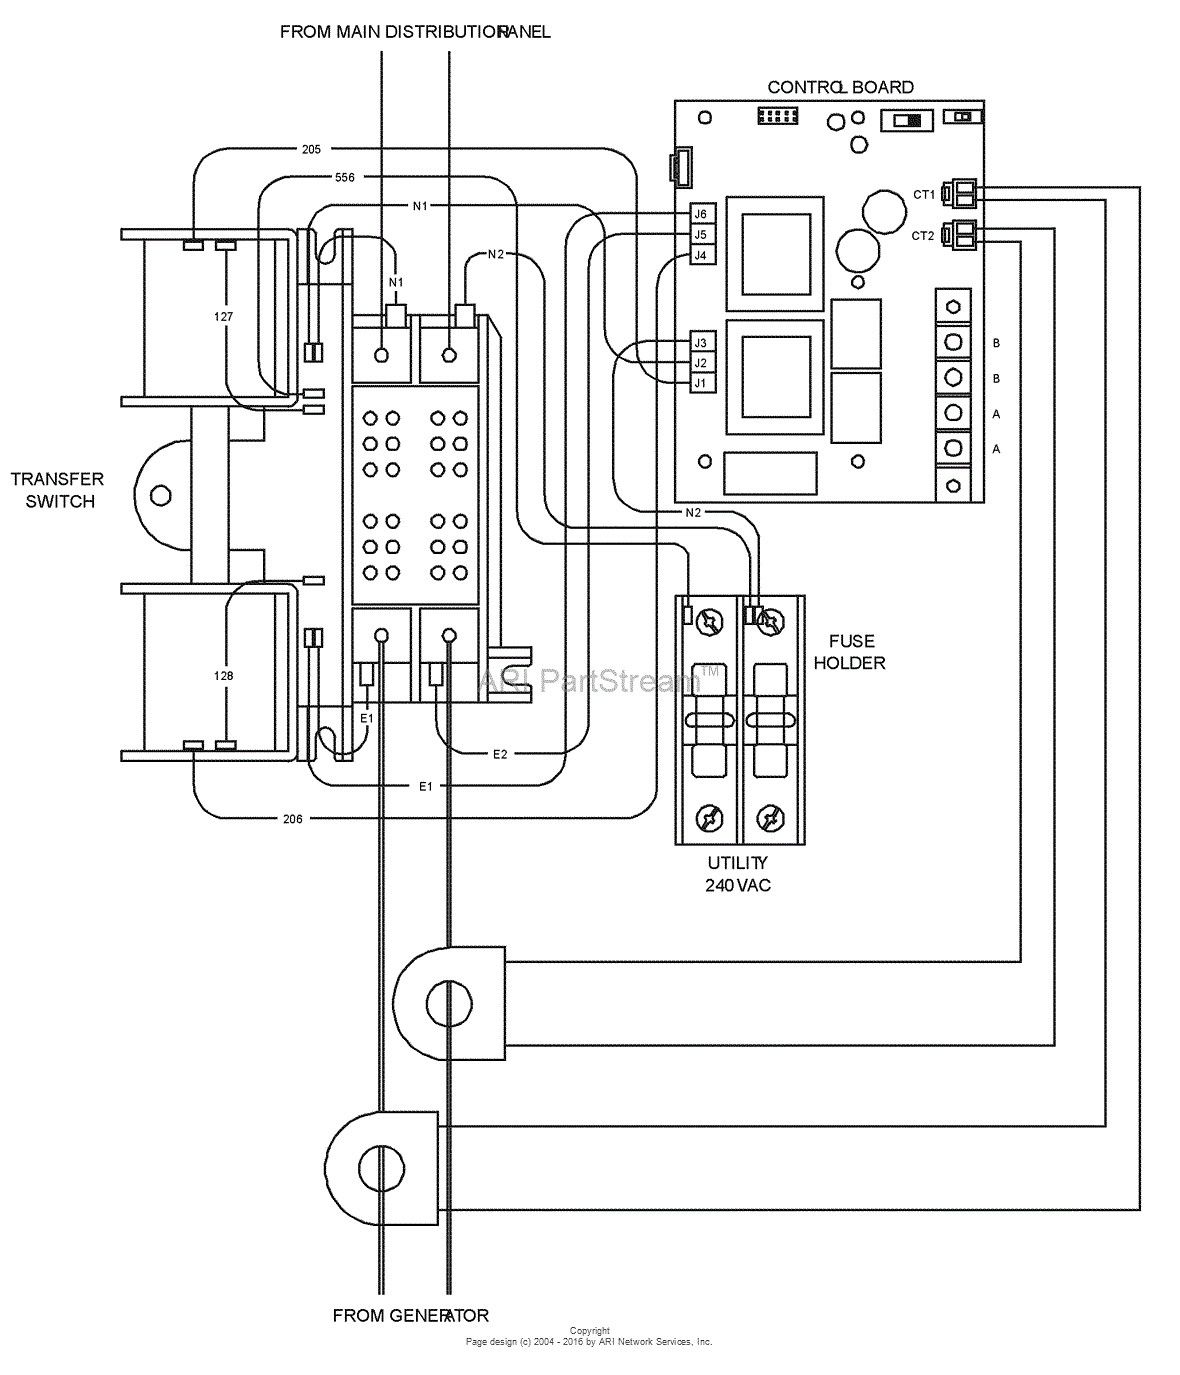 briggs and stratton transfer switch wiring diagram | free ... briggs amp stratton wiring diagram